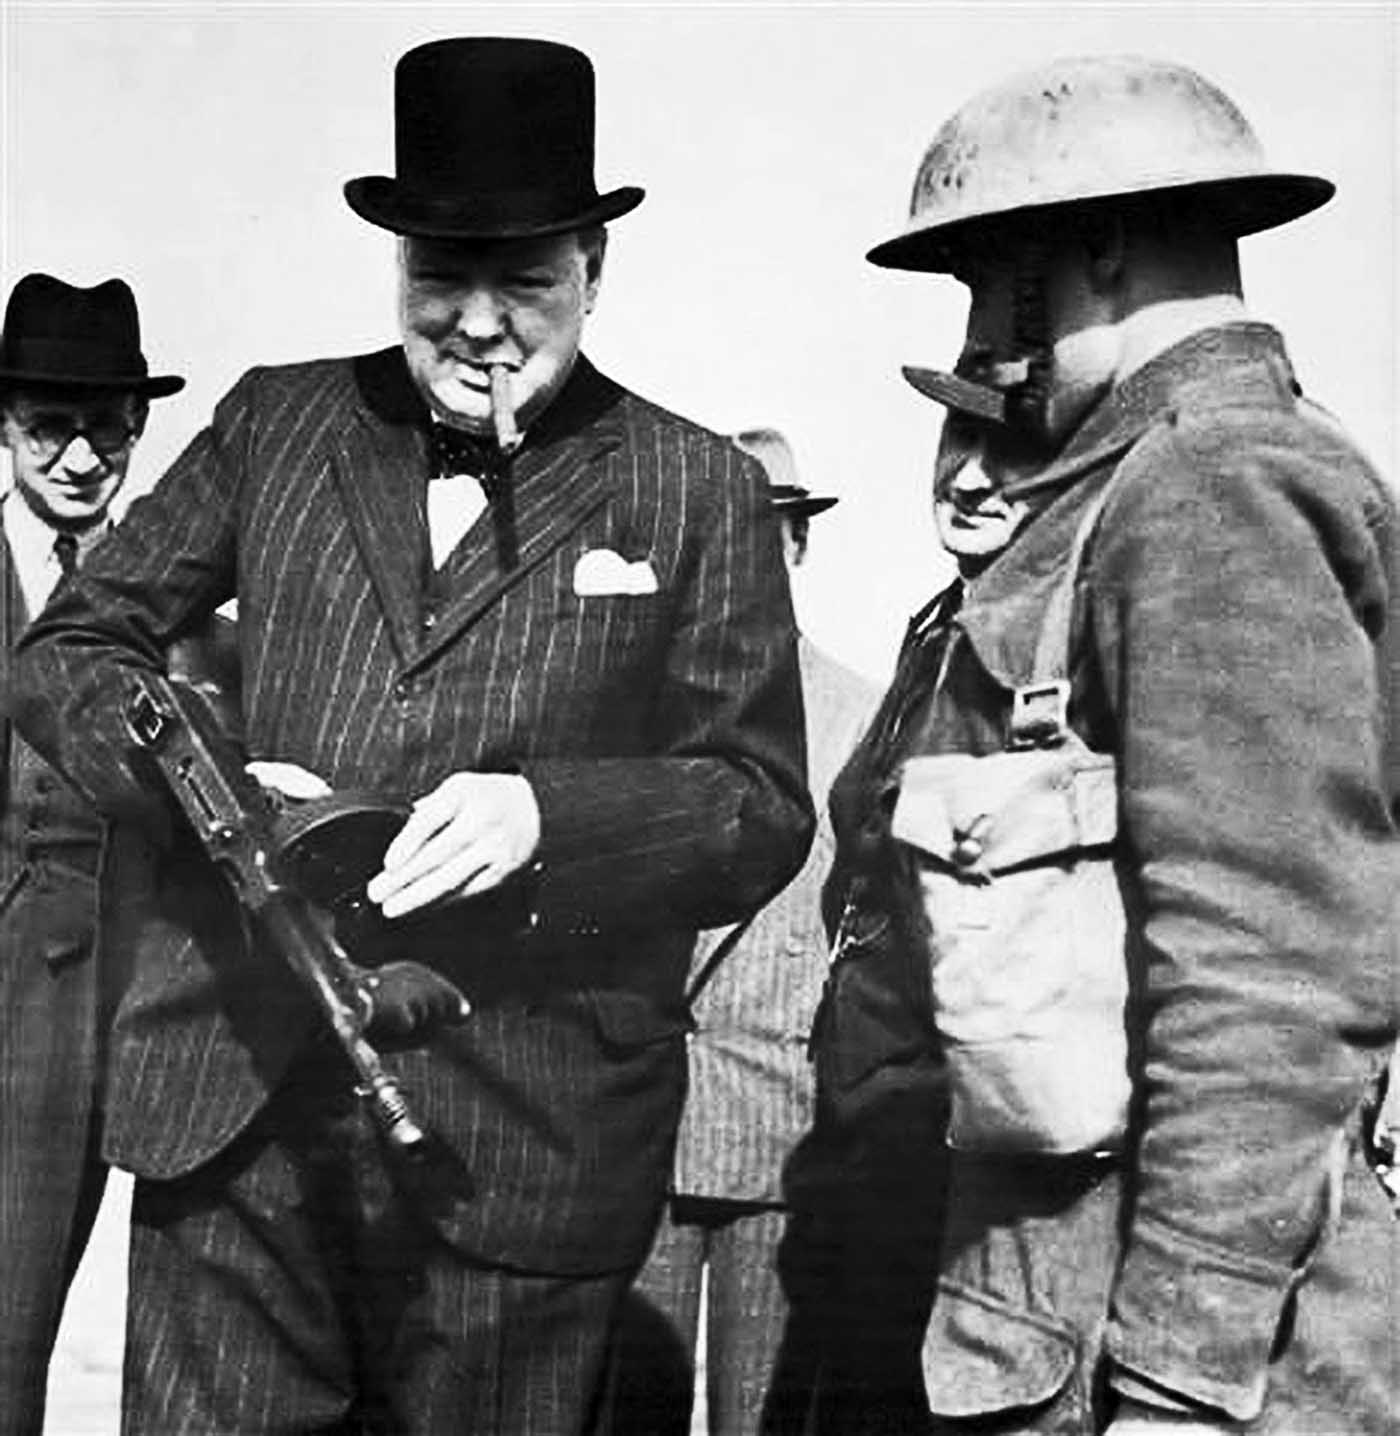 Winston Churchill with a Tommy Gun during an inspection near Hartlepool, 1940